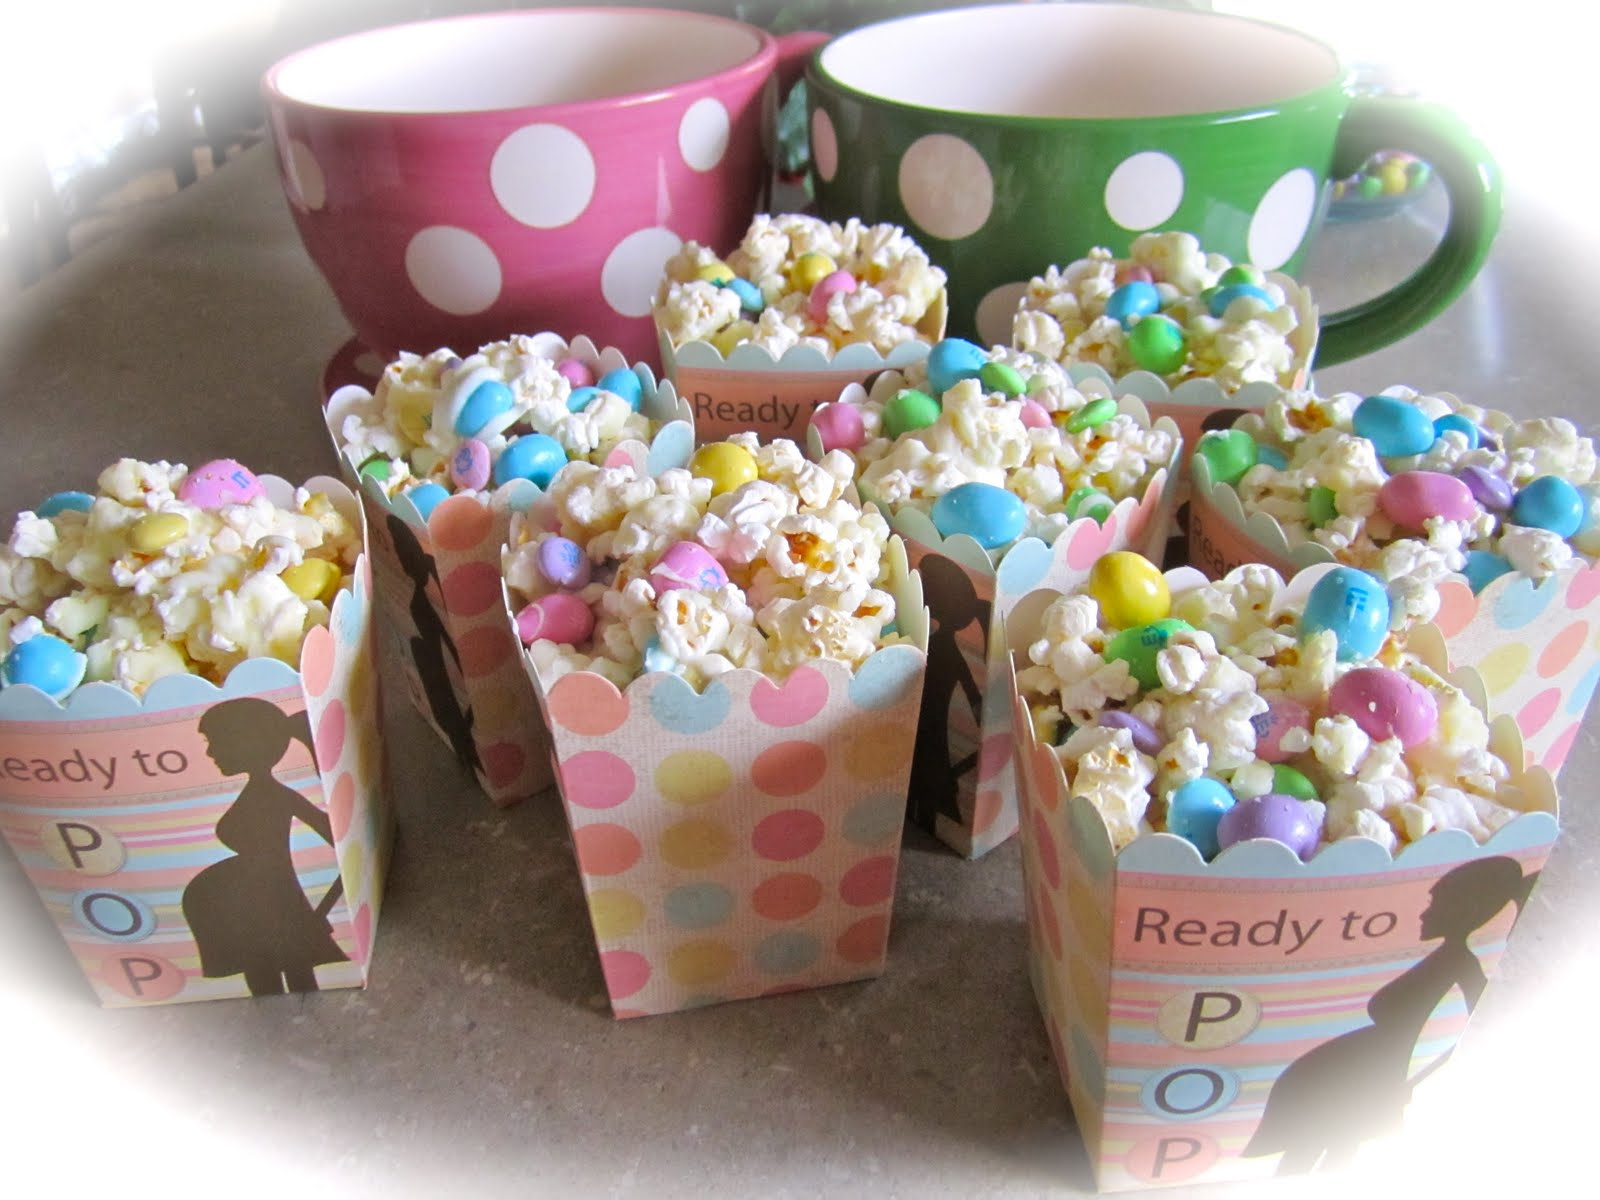 "Back Pocket Creations ""She is ready to Pop"" Popcorn"